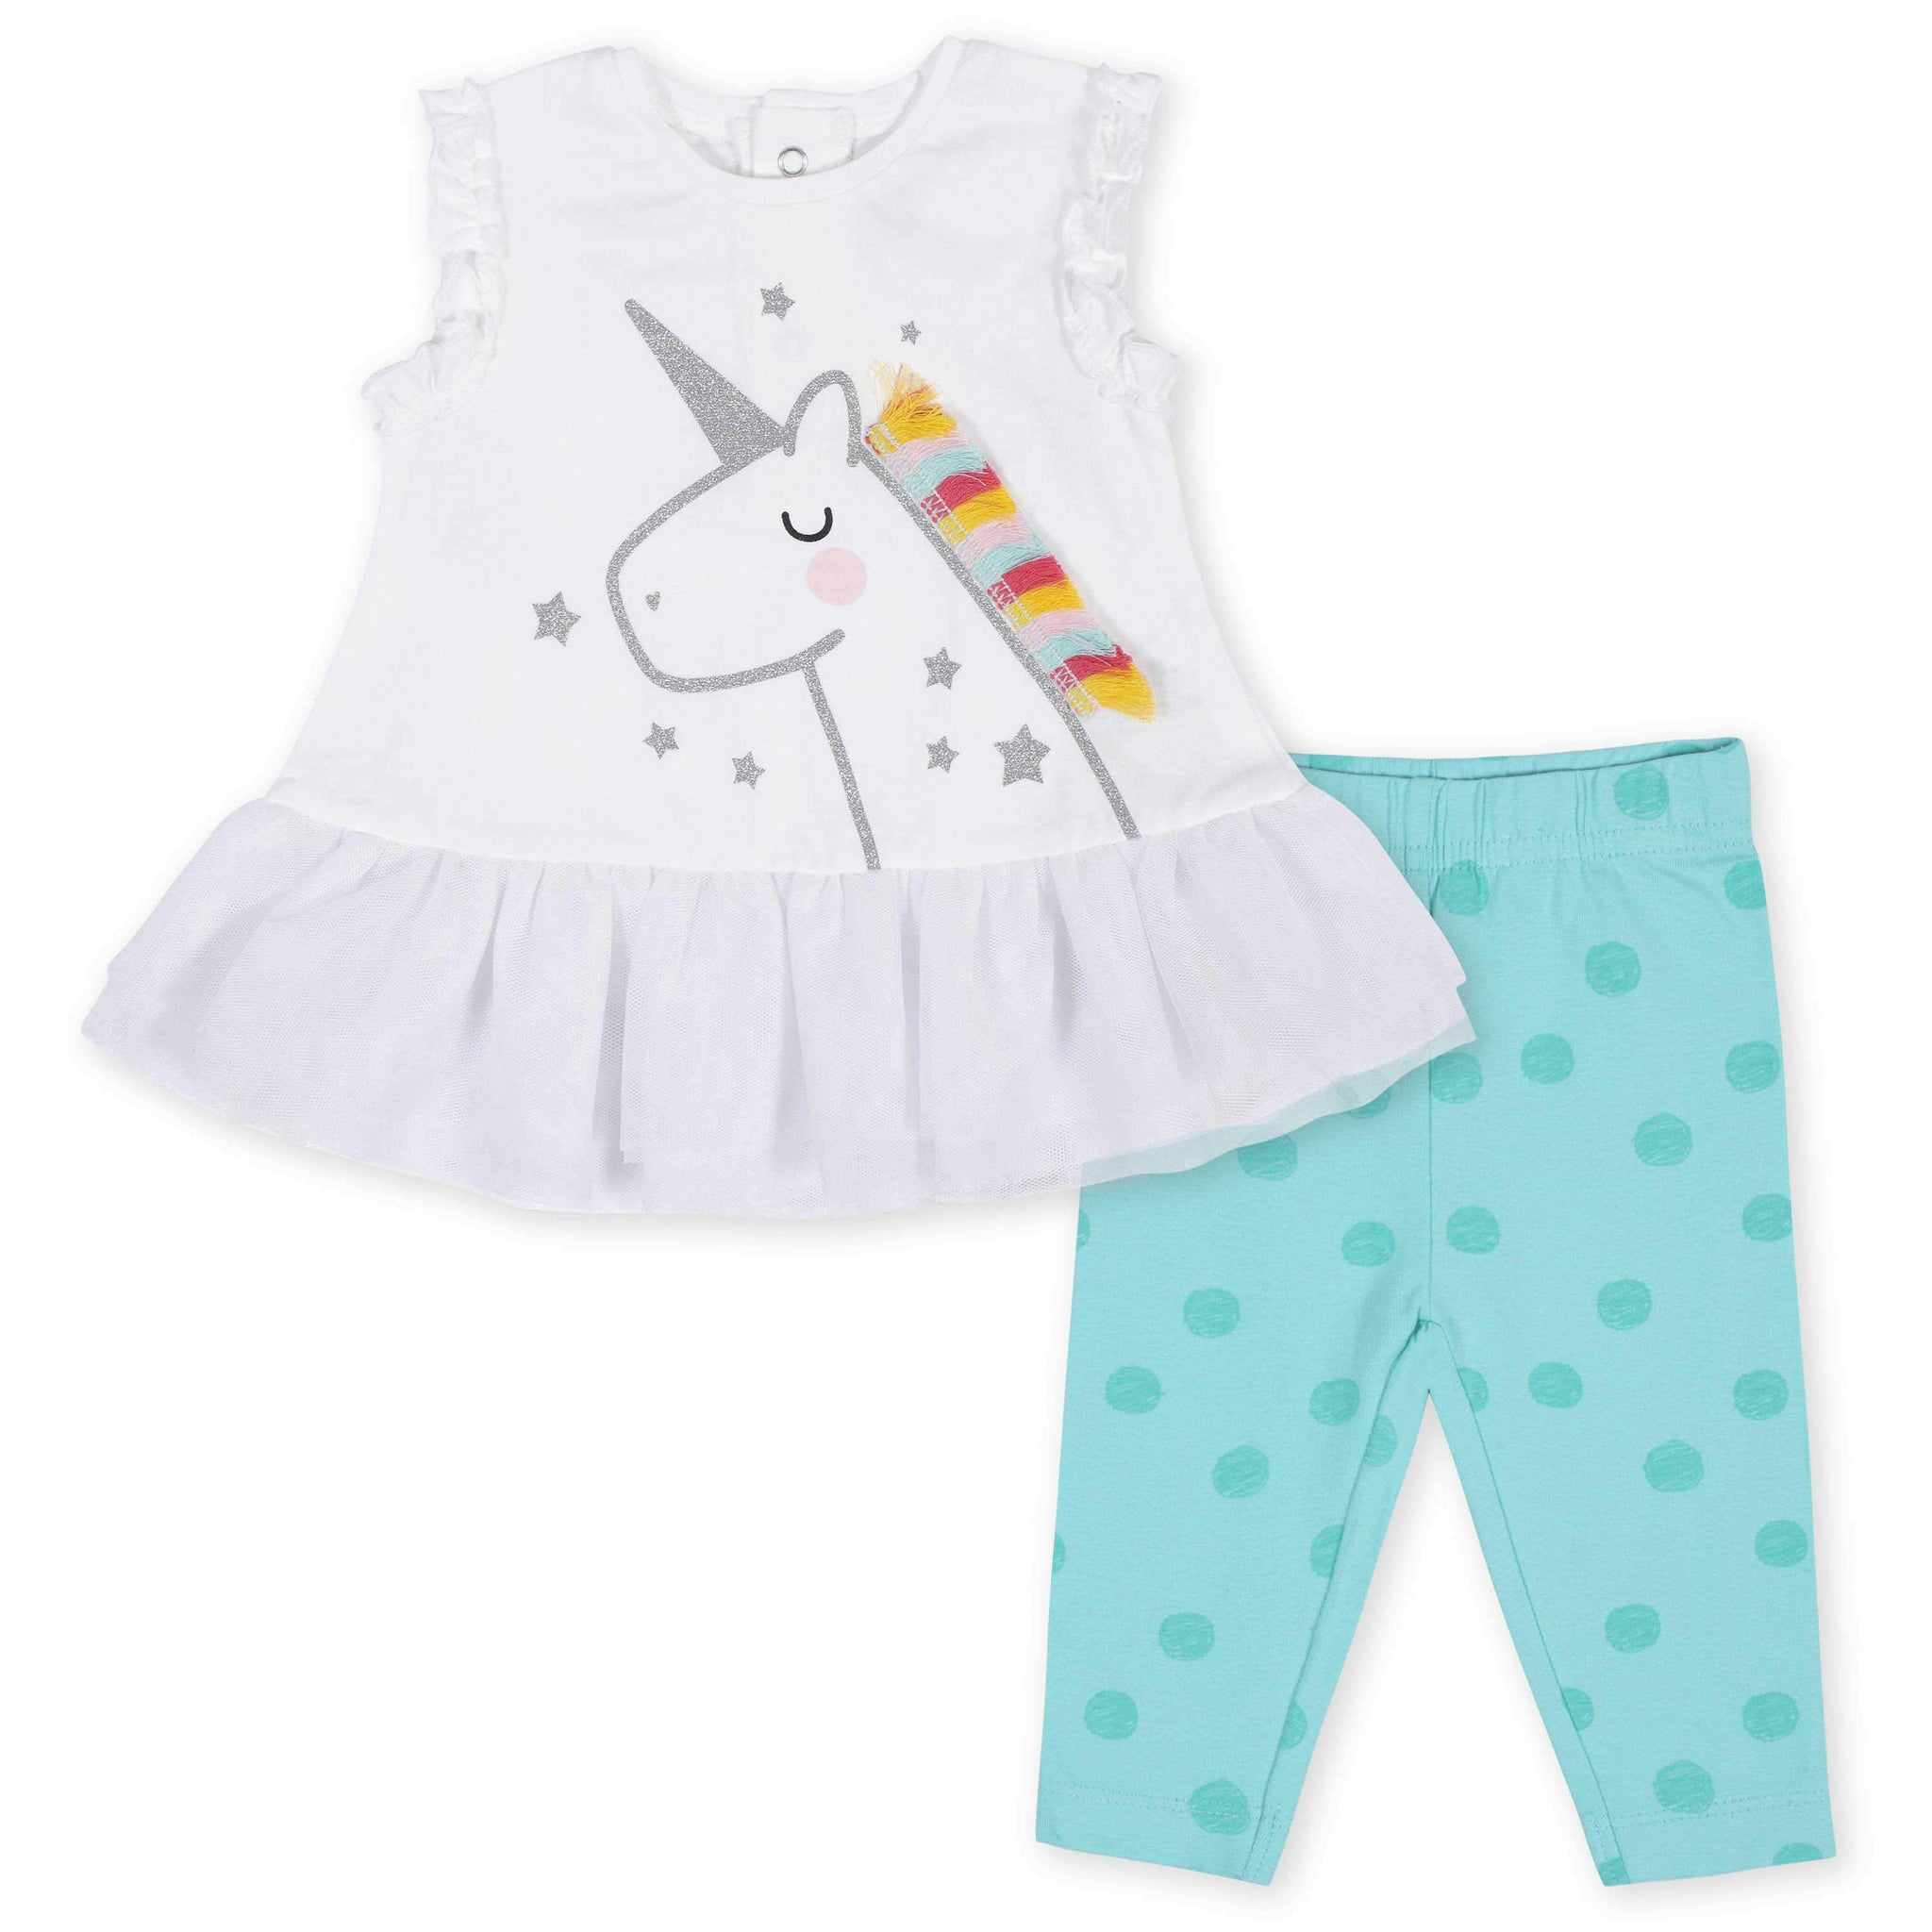 2-Piece Baby Girls Unicorn Ruffled Tunic and Legging Set